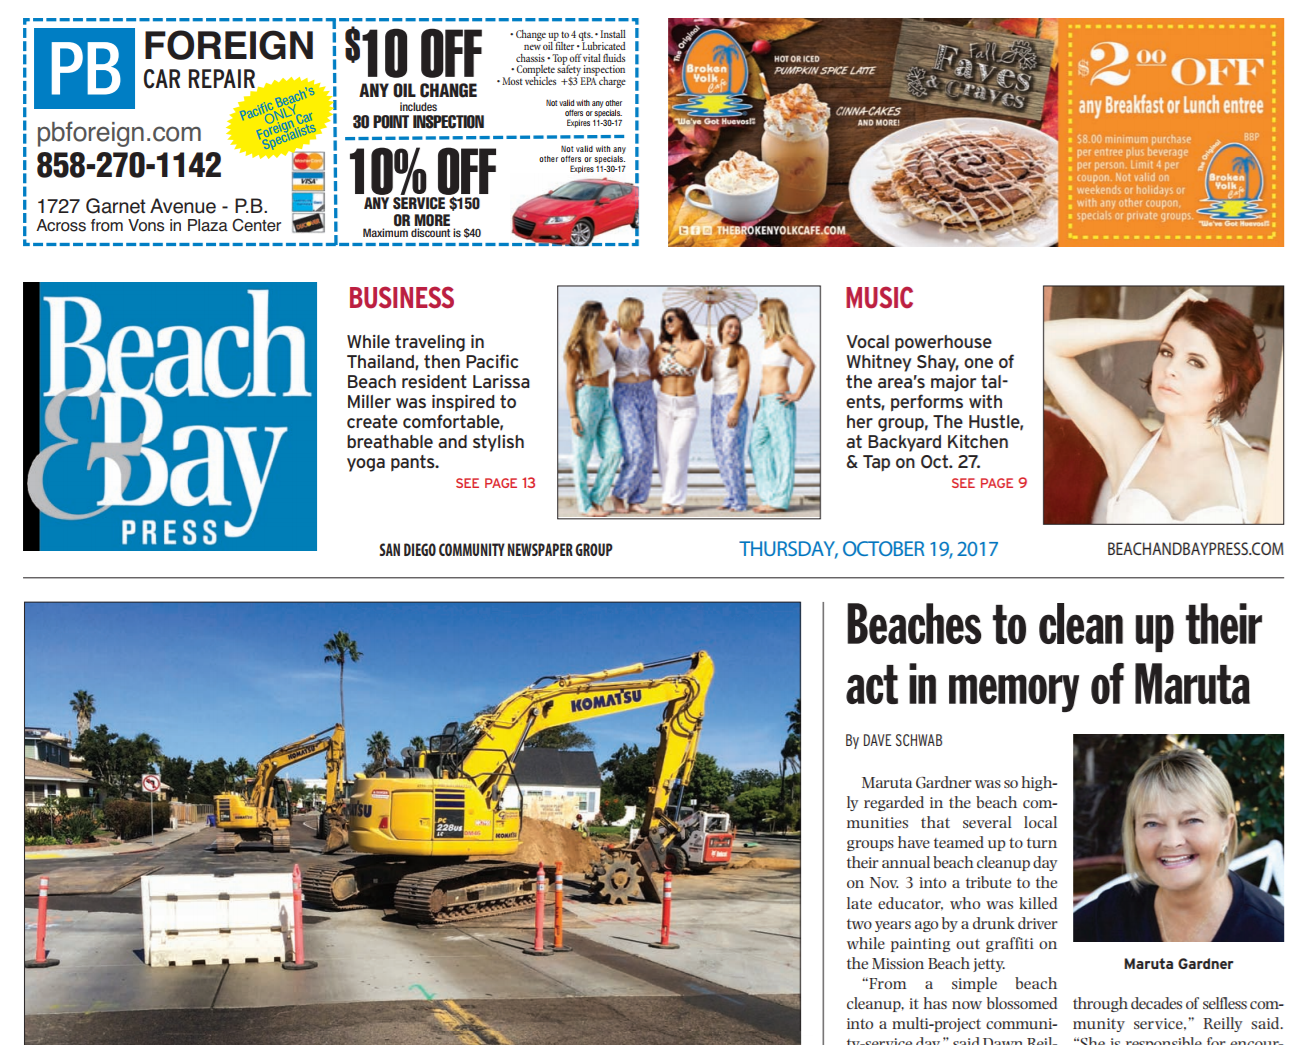 PIYOGA was featured in Beach & Bay Press, local San Diego publication. This is PIYOGA featured publication in the cover page of the newspaper! PIYOGA PRESS RELEASE